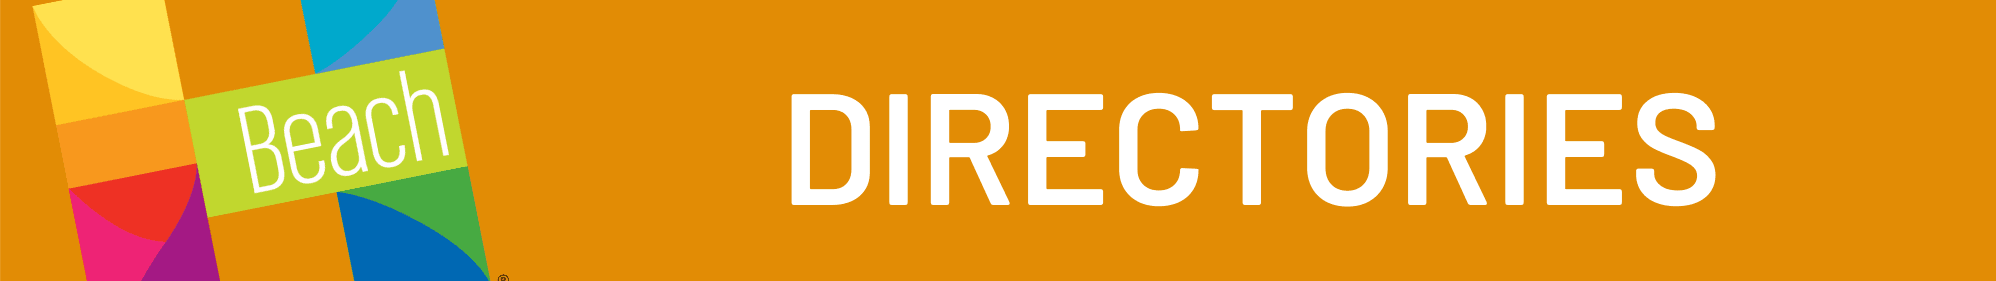 Directories Web Header